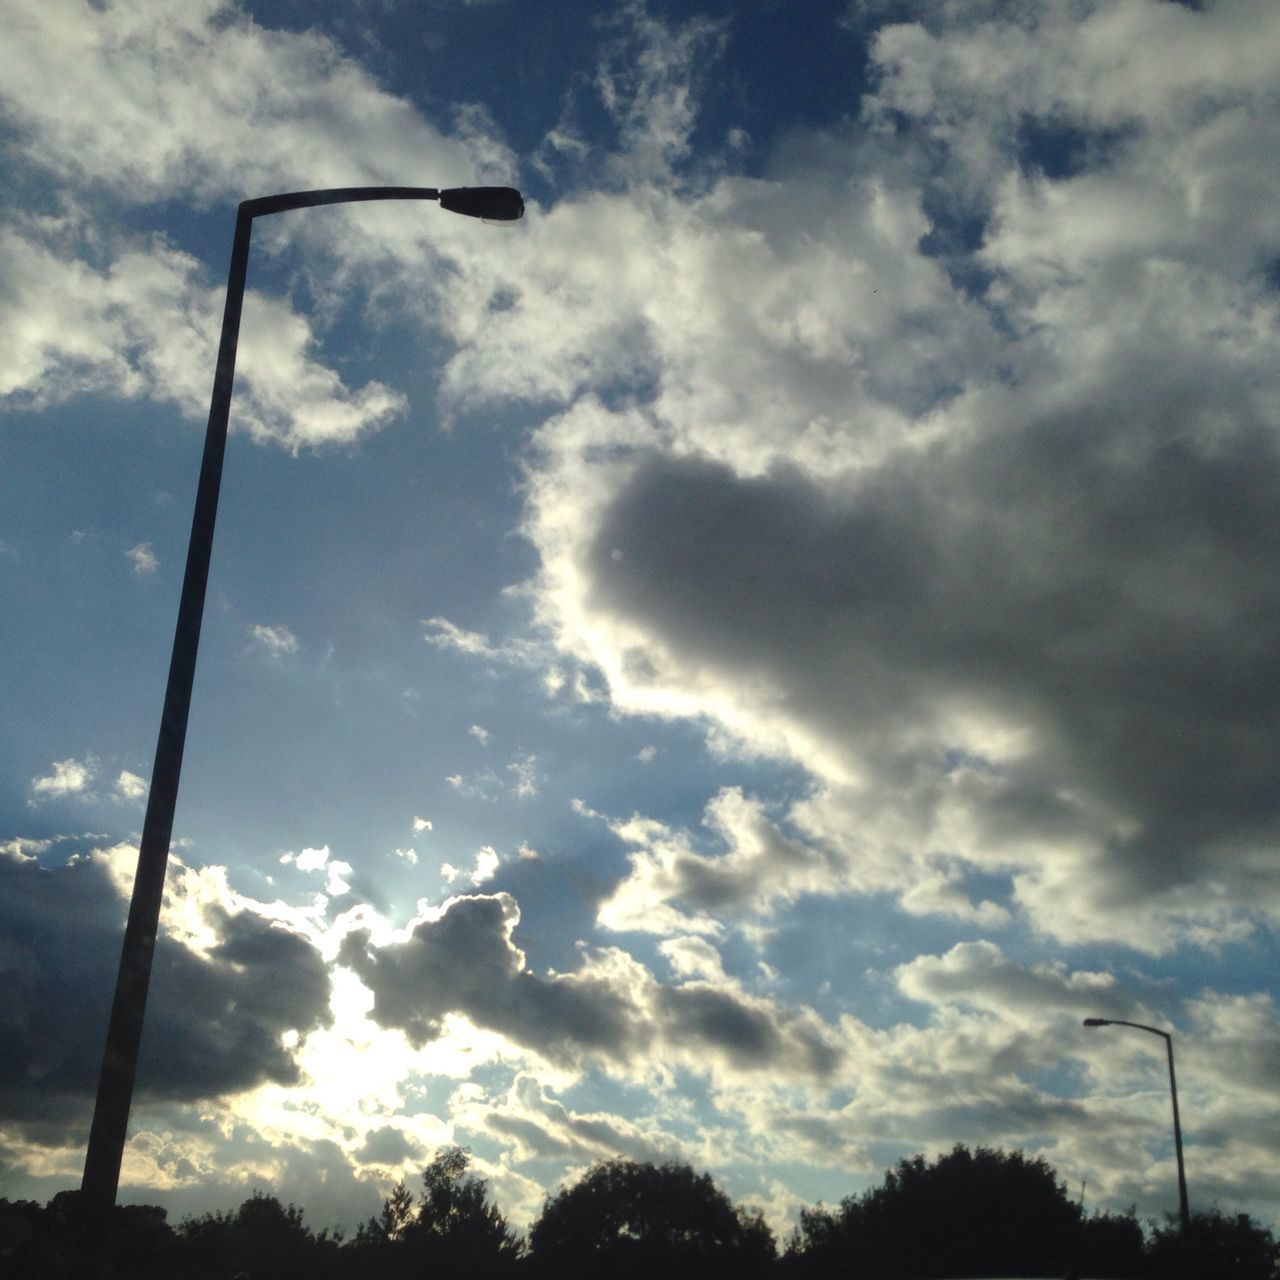 sky, cloud - sky, low angle view, no people, outdoors, day, nature, tree